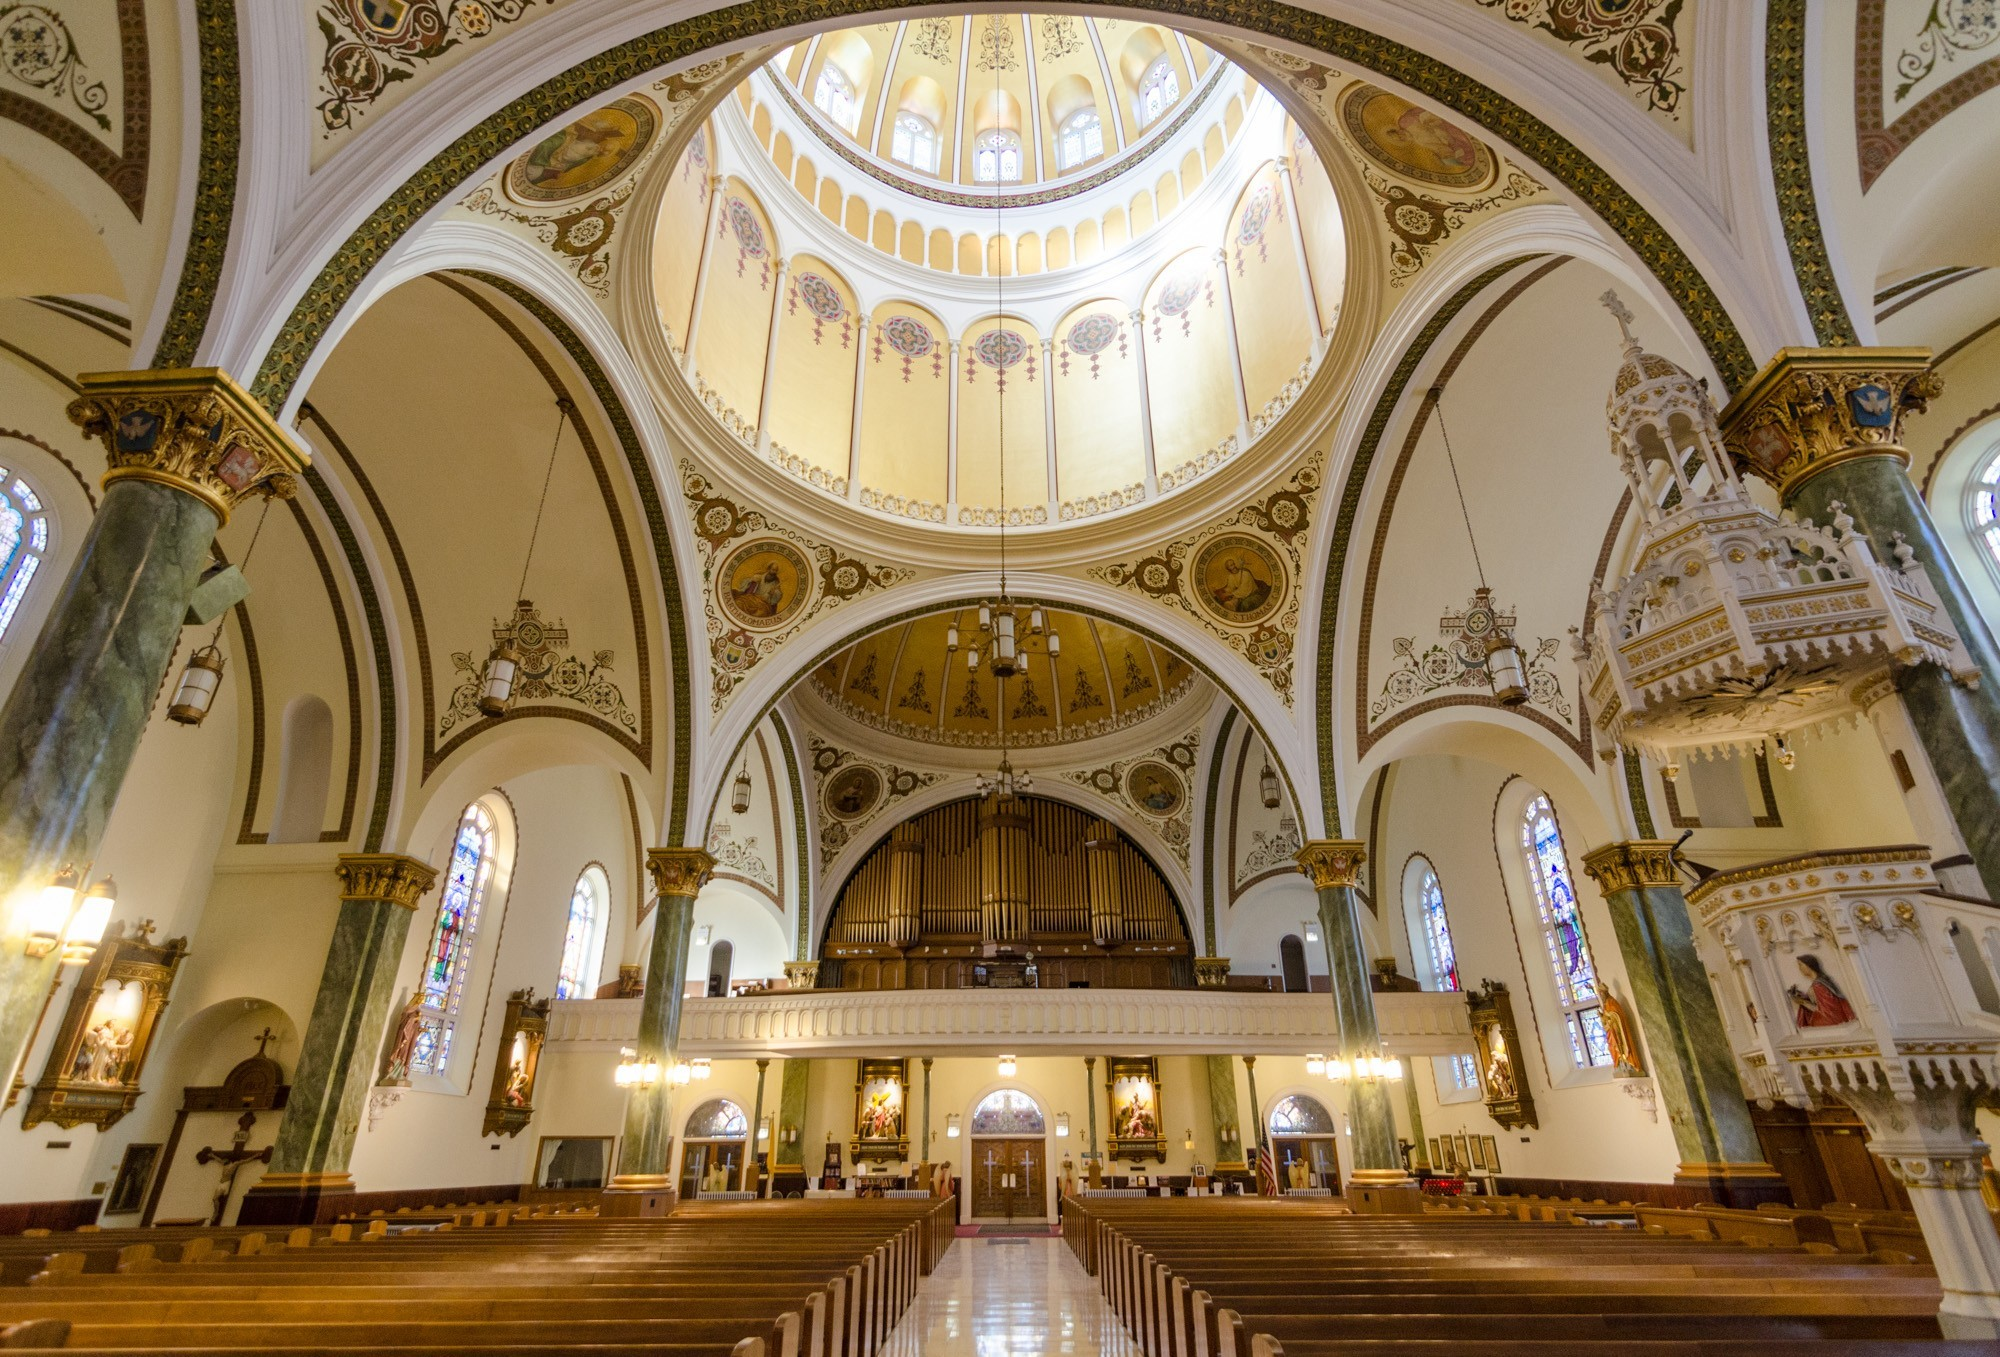 Churches By Bus · Tours · Chicago Architecture Foundation - CAF